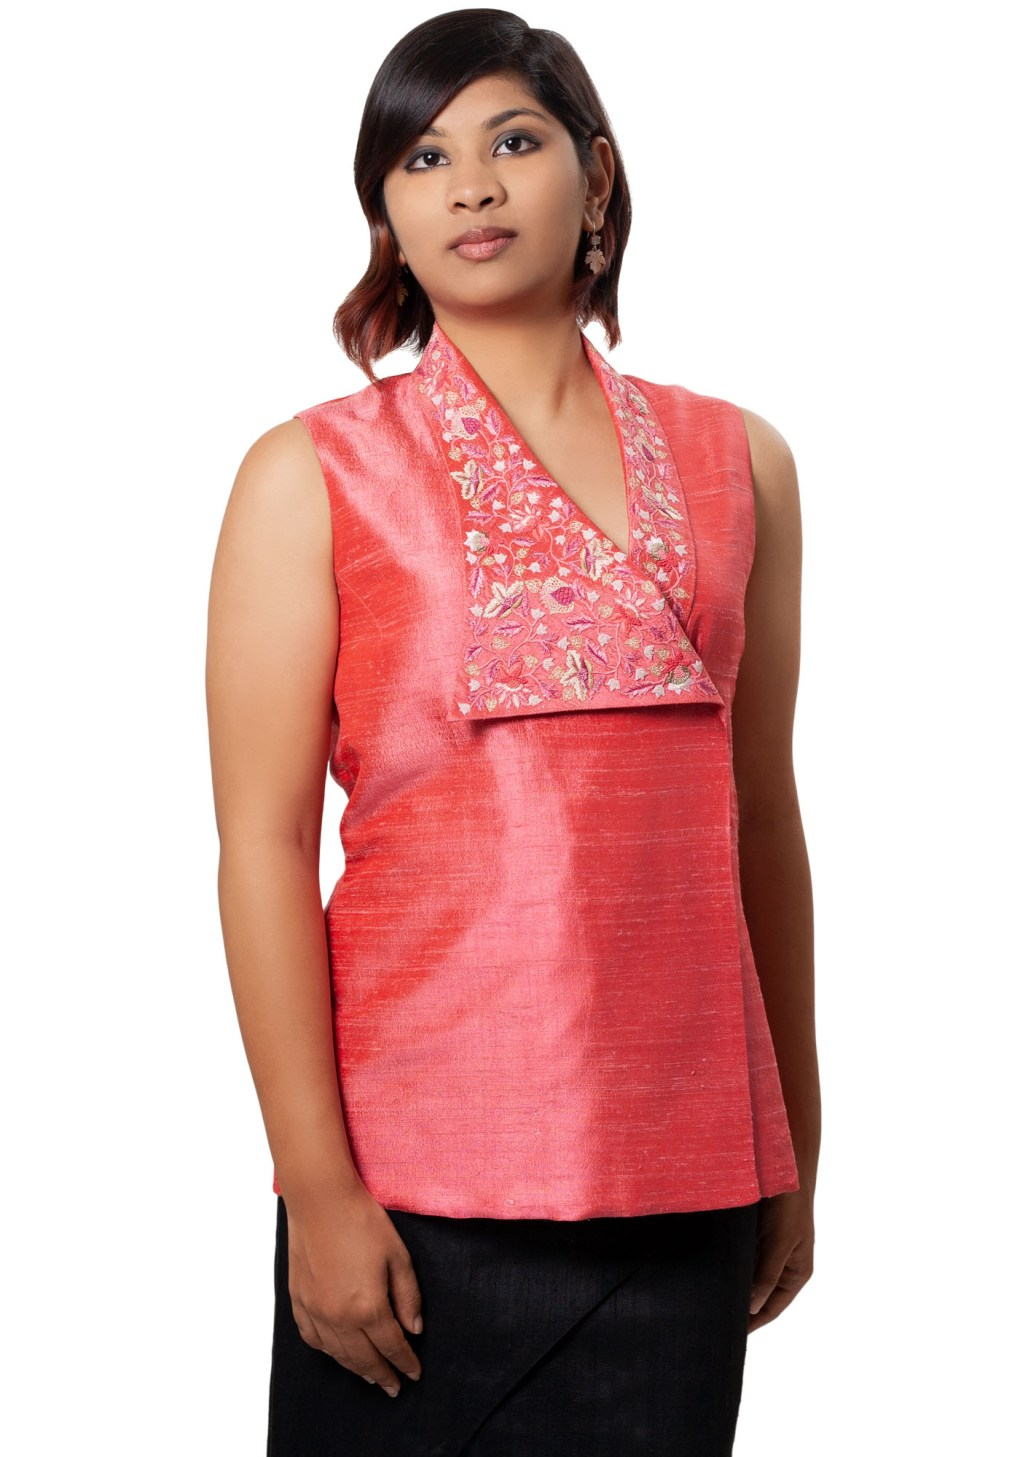 MINC Bridal Couture Elegant Asymmetric Hand Embroidered Top in Pink Silk